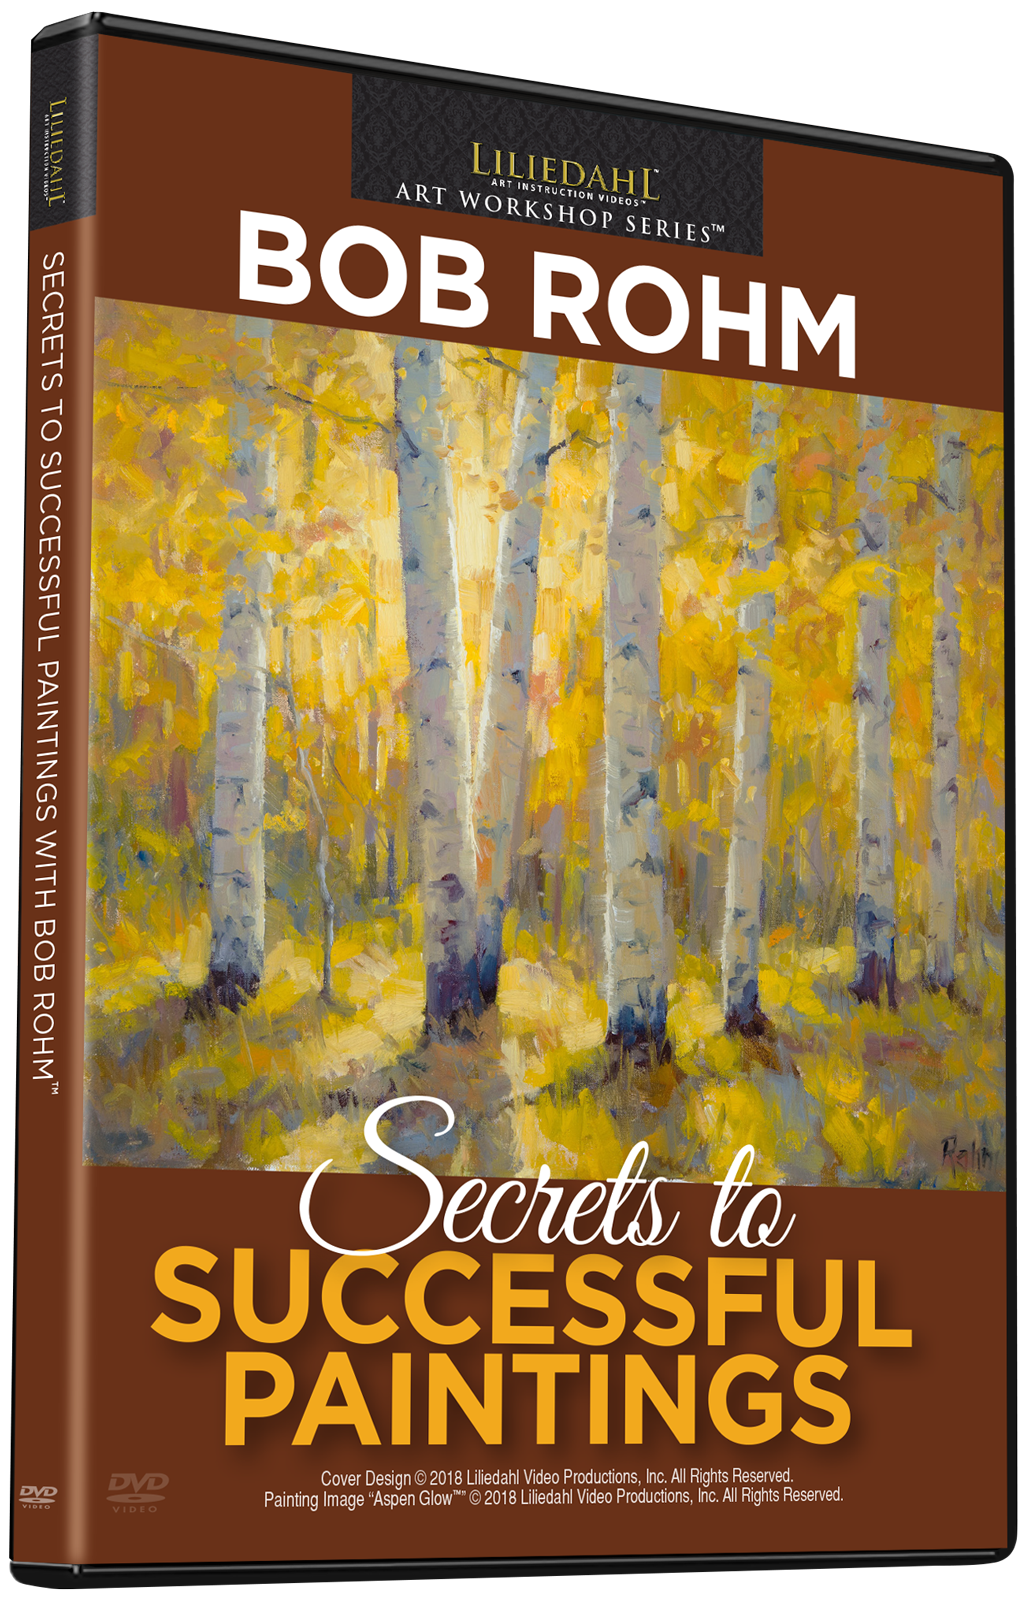 Bob Rohm: Secrets of Successful Paintings